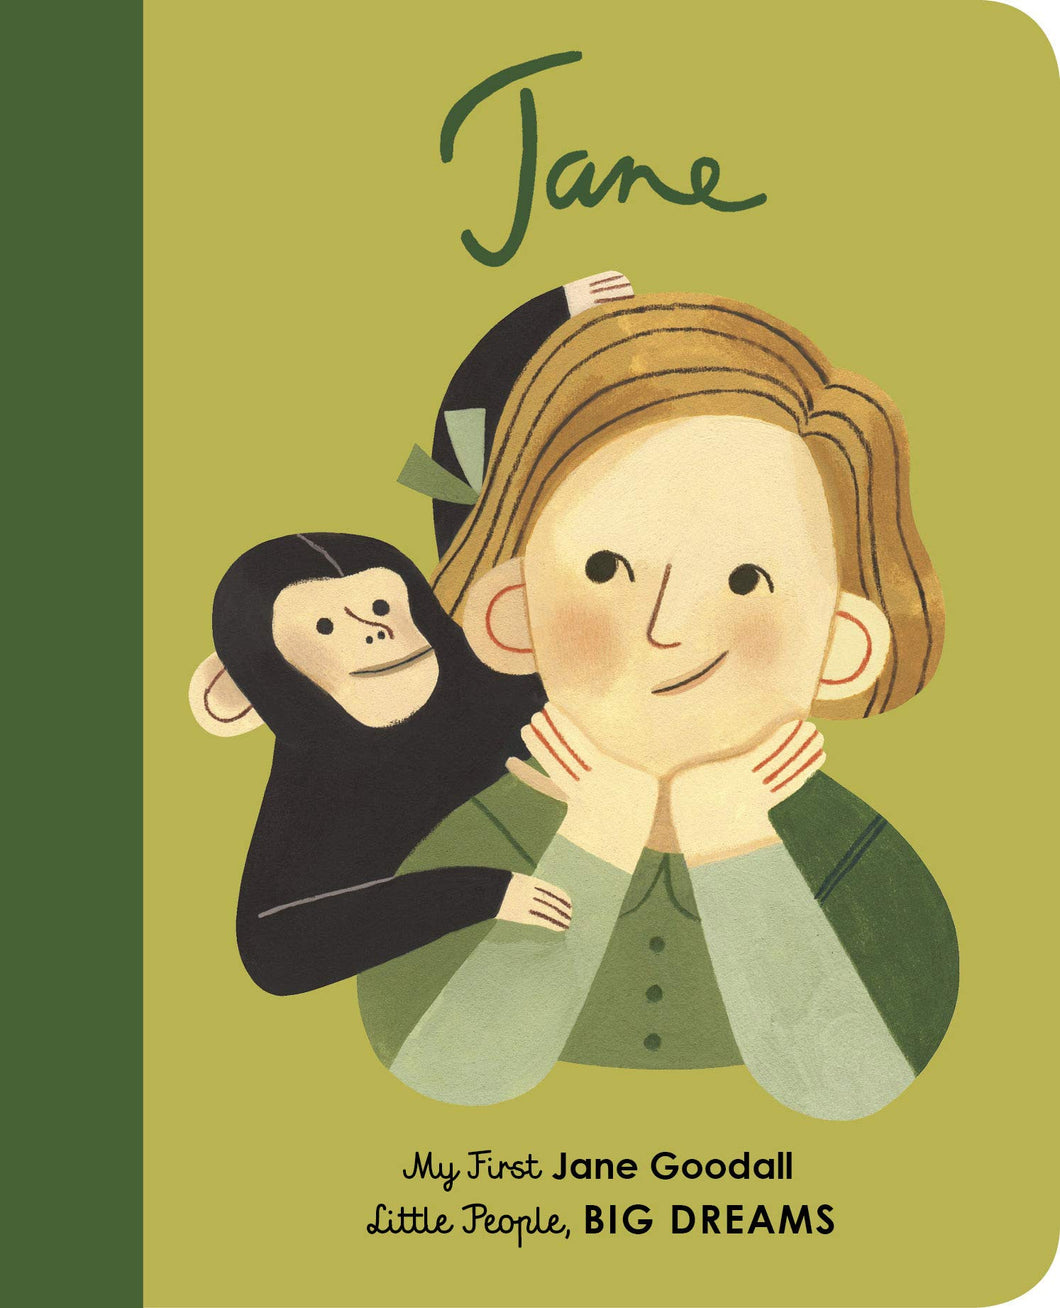 Jane Goodall by Maria Isabel Sanchez Vegara - Board Book